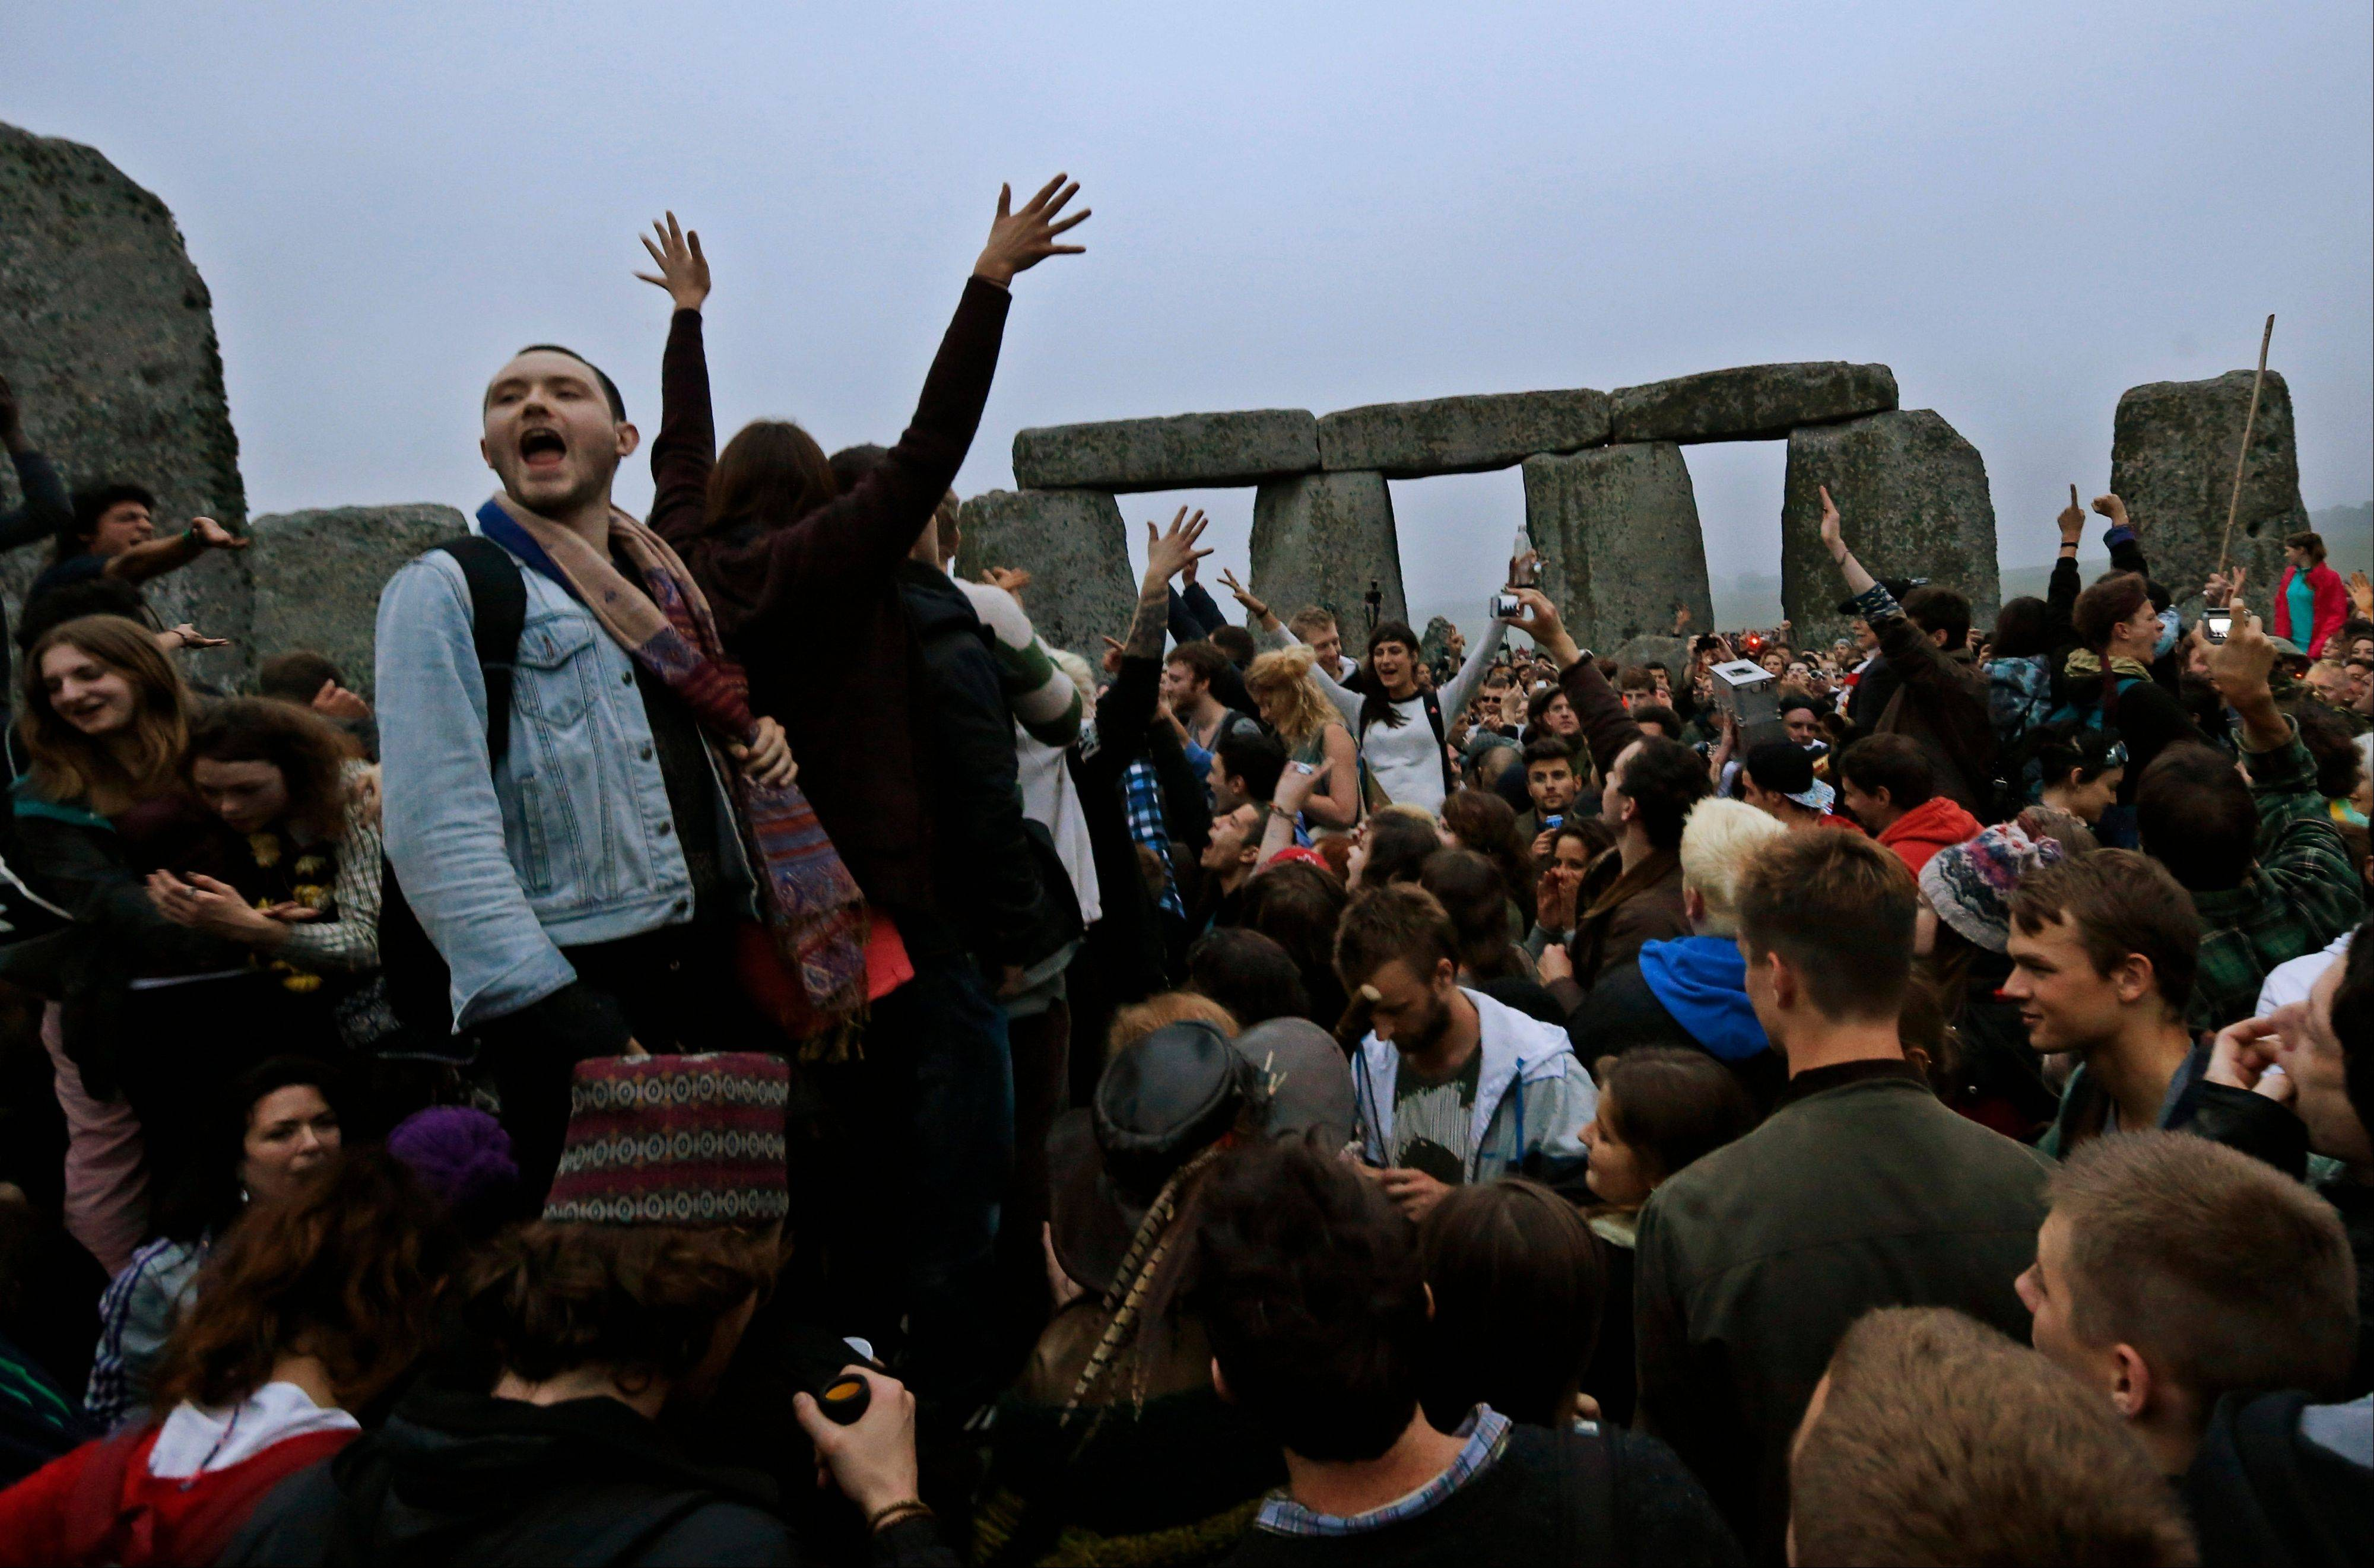 People raise their hands in celebration during the summer solstice shortly after 4:52 a.m. at the prehistoric Stonehenge monument, near Salisbury, England, Friday, June 21, 2013. Following an annual all-night party, thousands of New Agers and neo-pagans danced and whooped in delight at the ancient stone circle Stonehenge, marking the summer solstice, the longest day of the year.